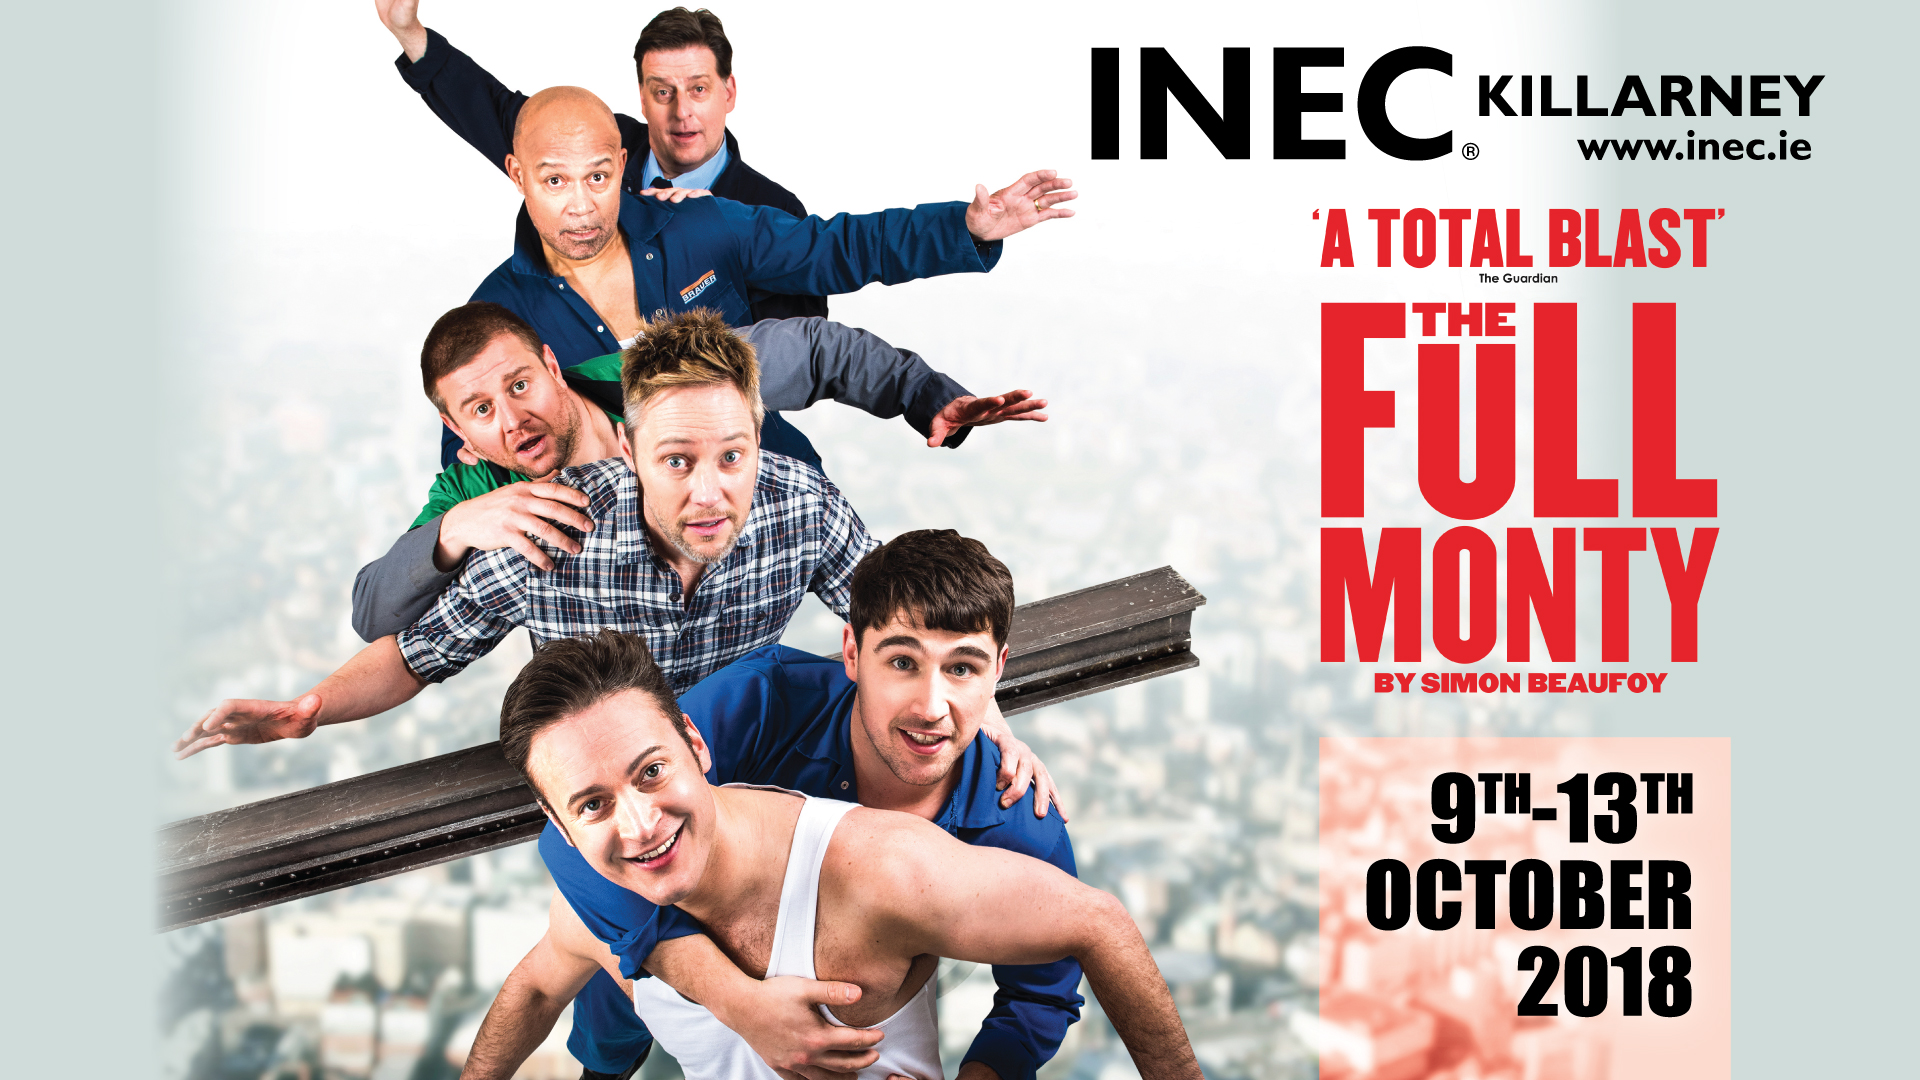 The Full Monty comes to INEC October 9-13